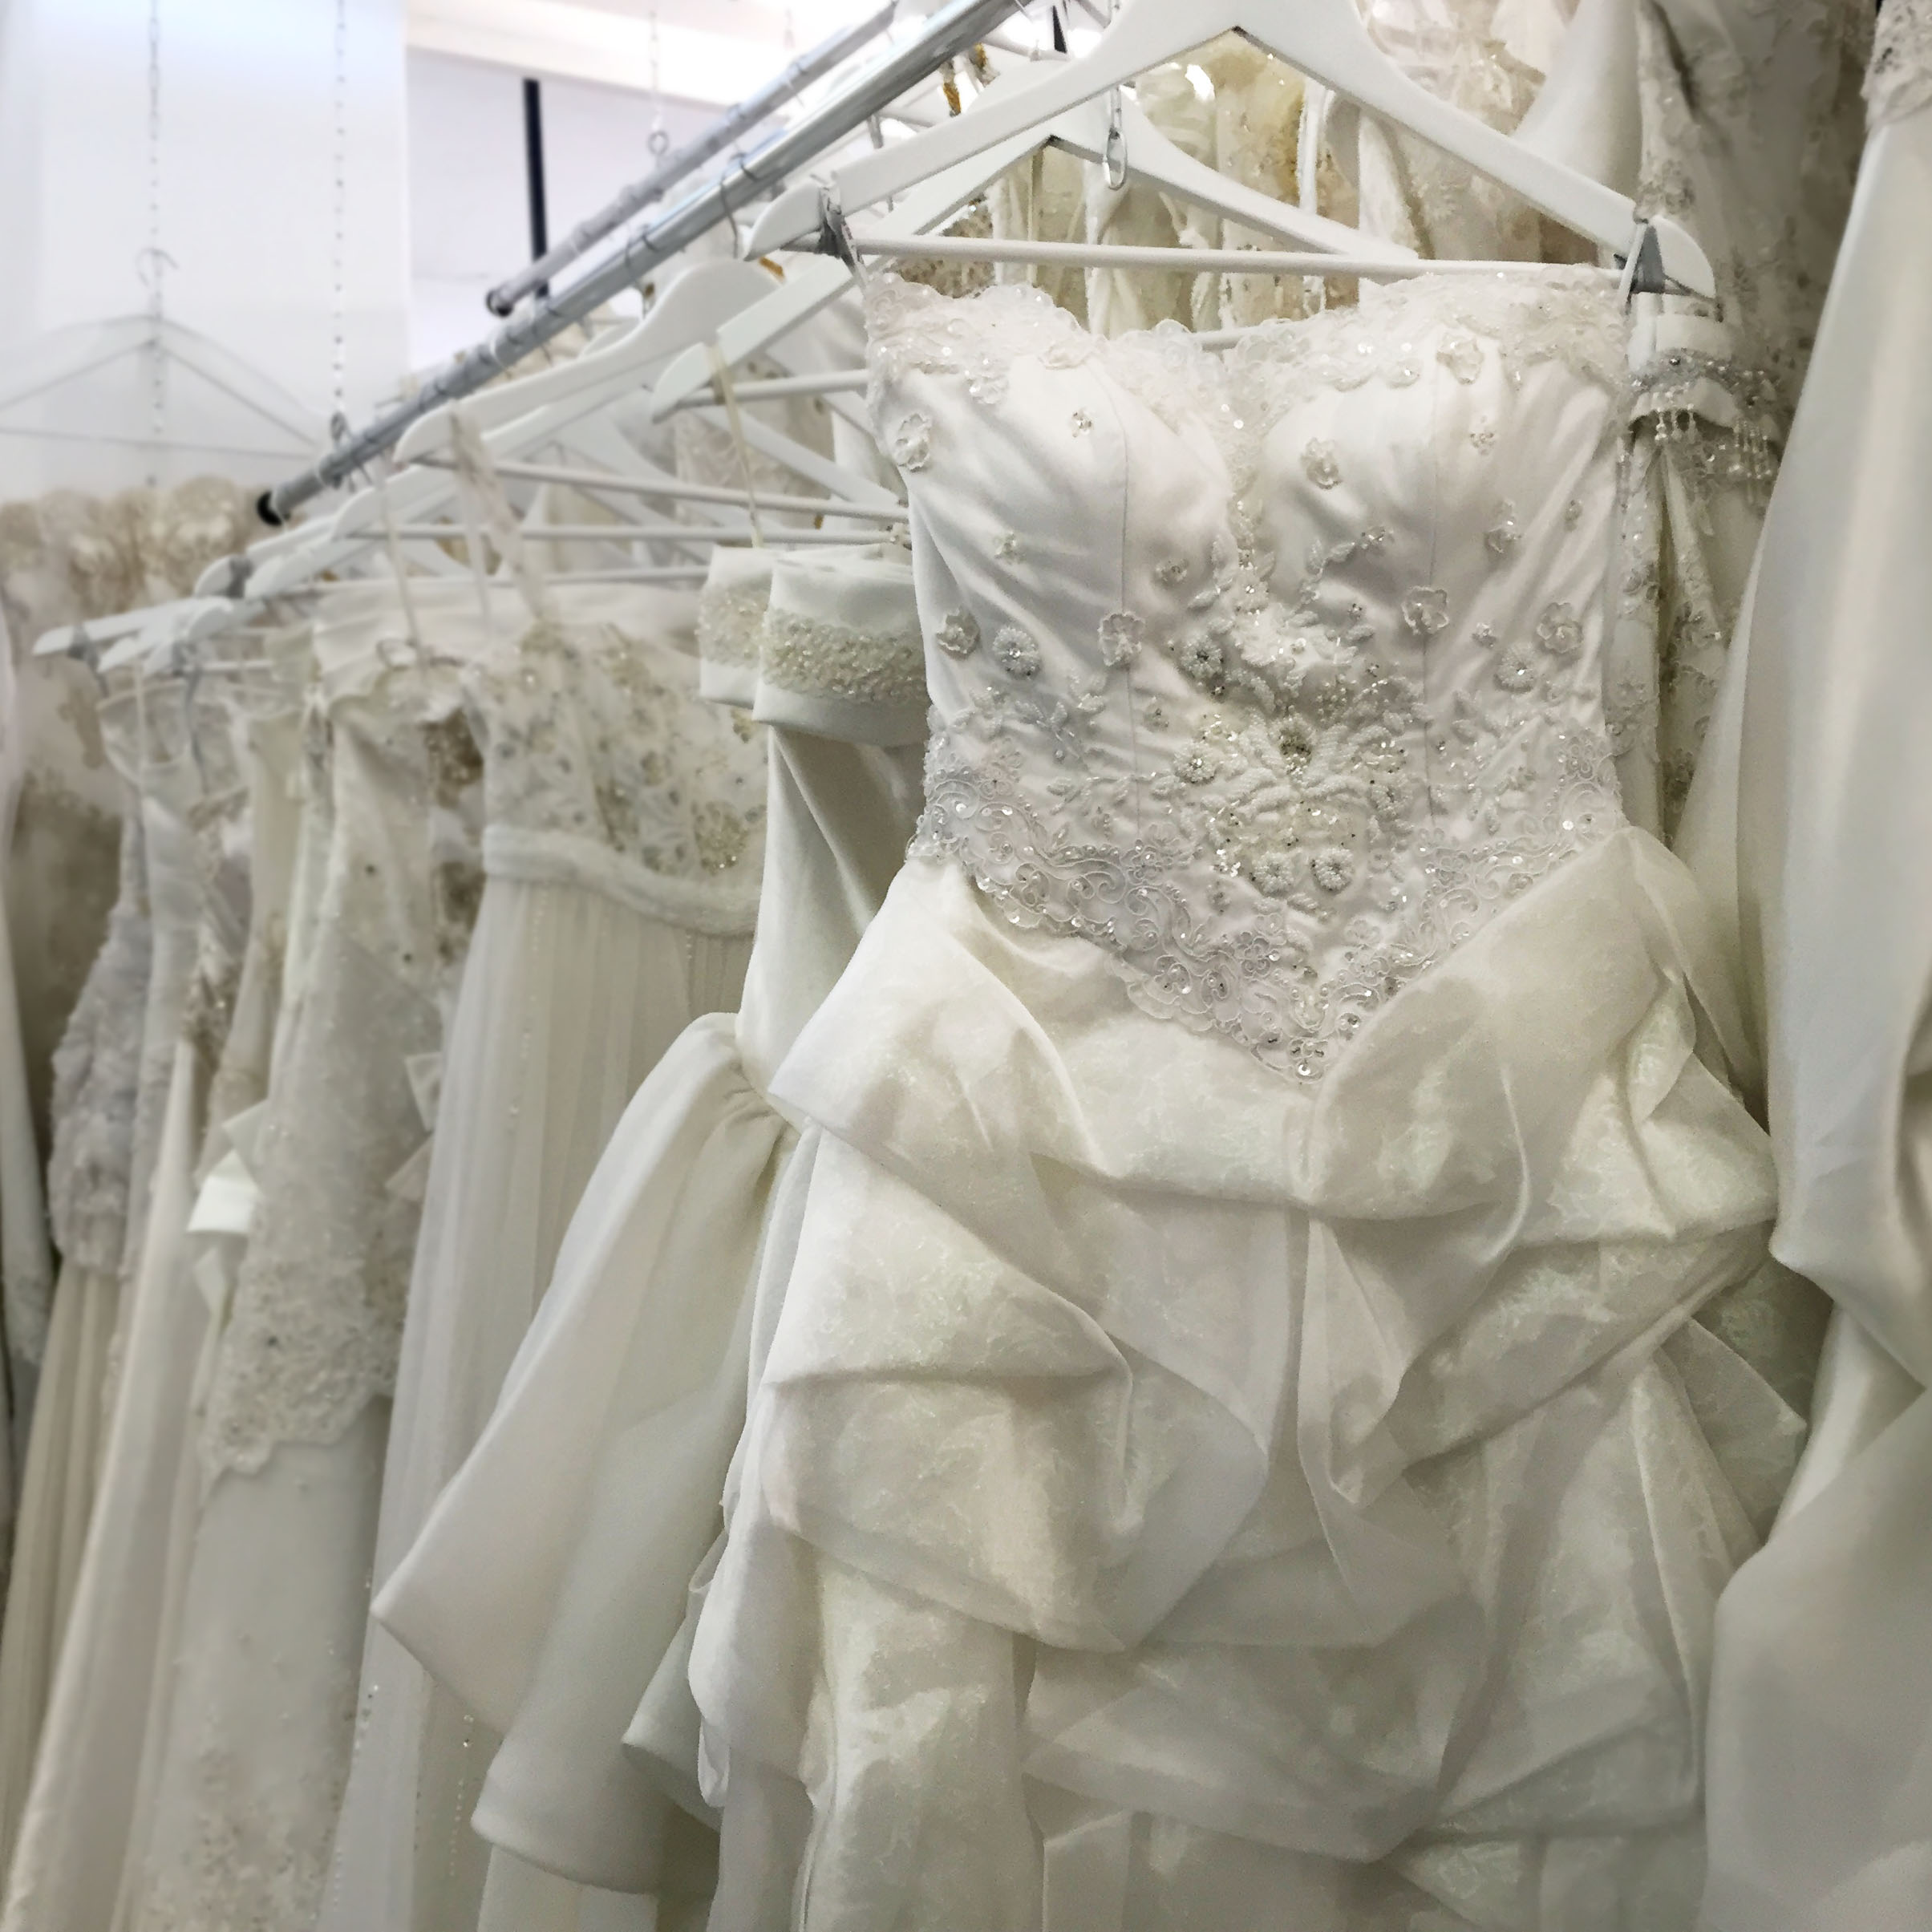 New collection of wedding dresses are in store now.